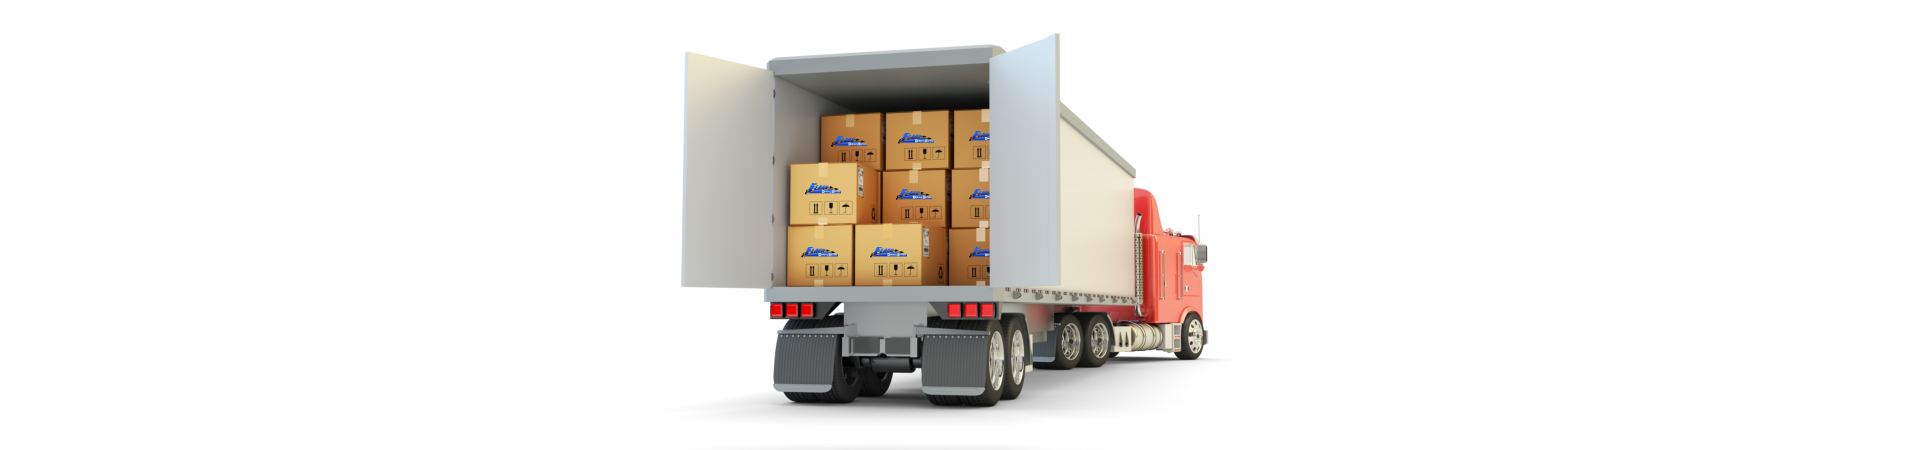 Freight transportation, packages shipment